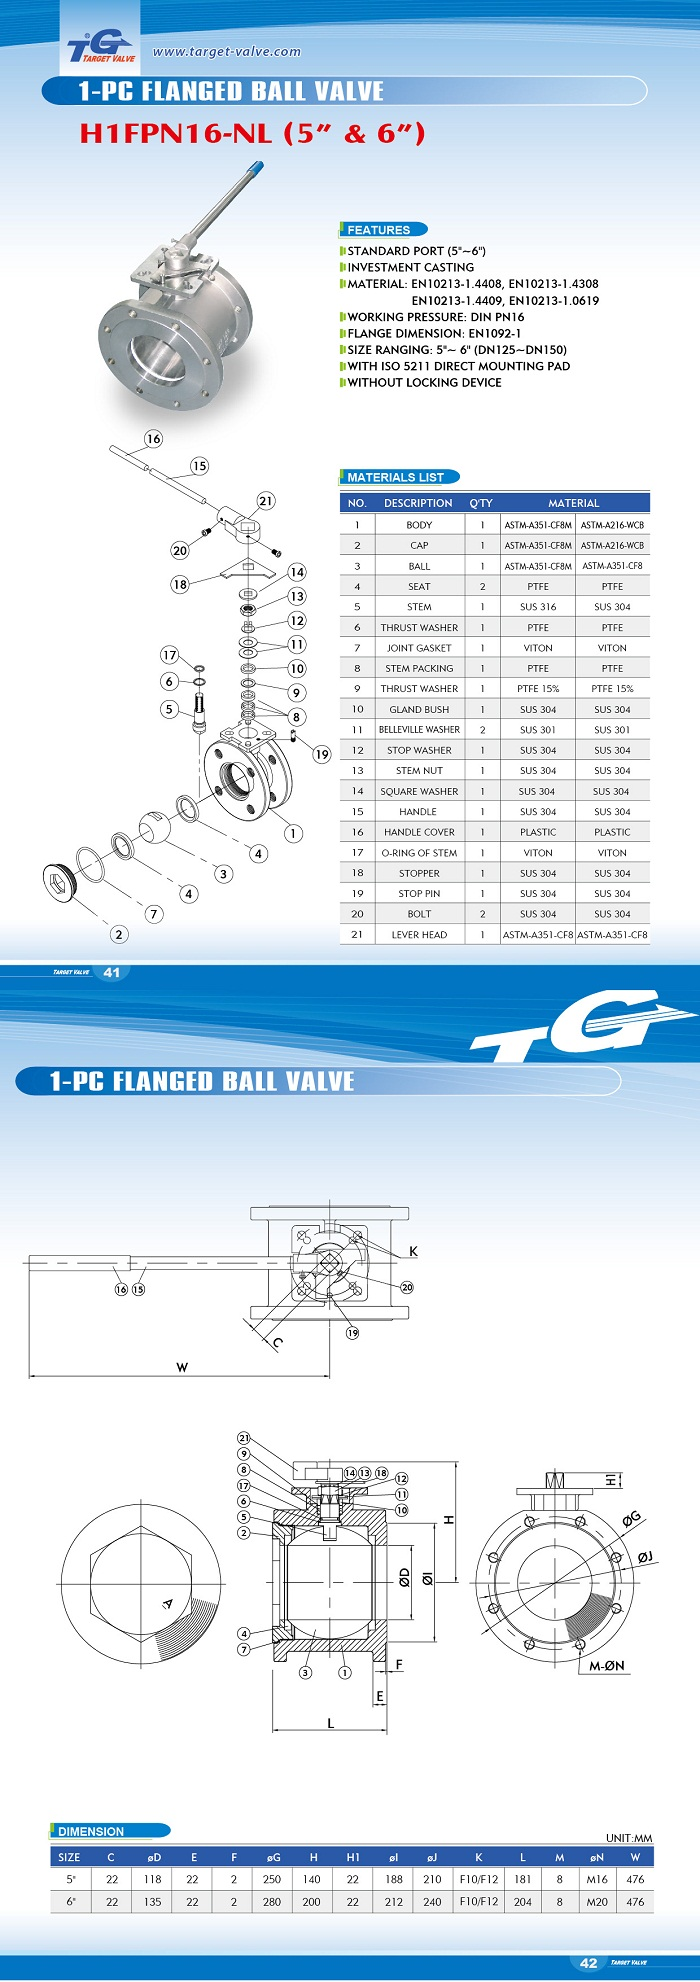 1 PC FLANGED BALL VALVE - H1FPN16